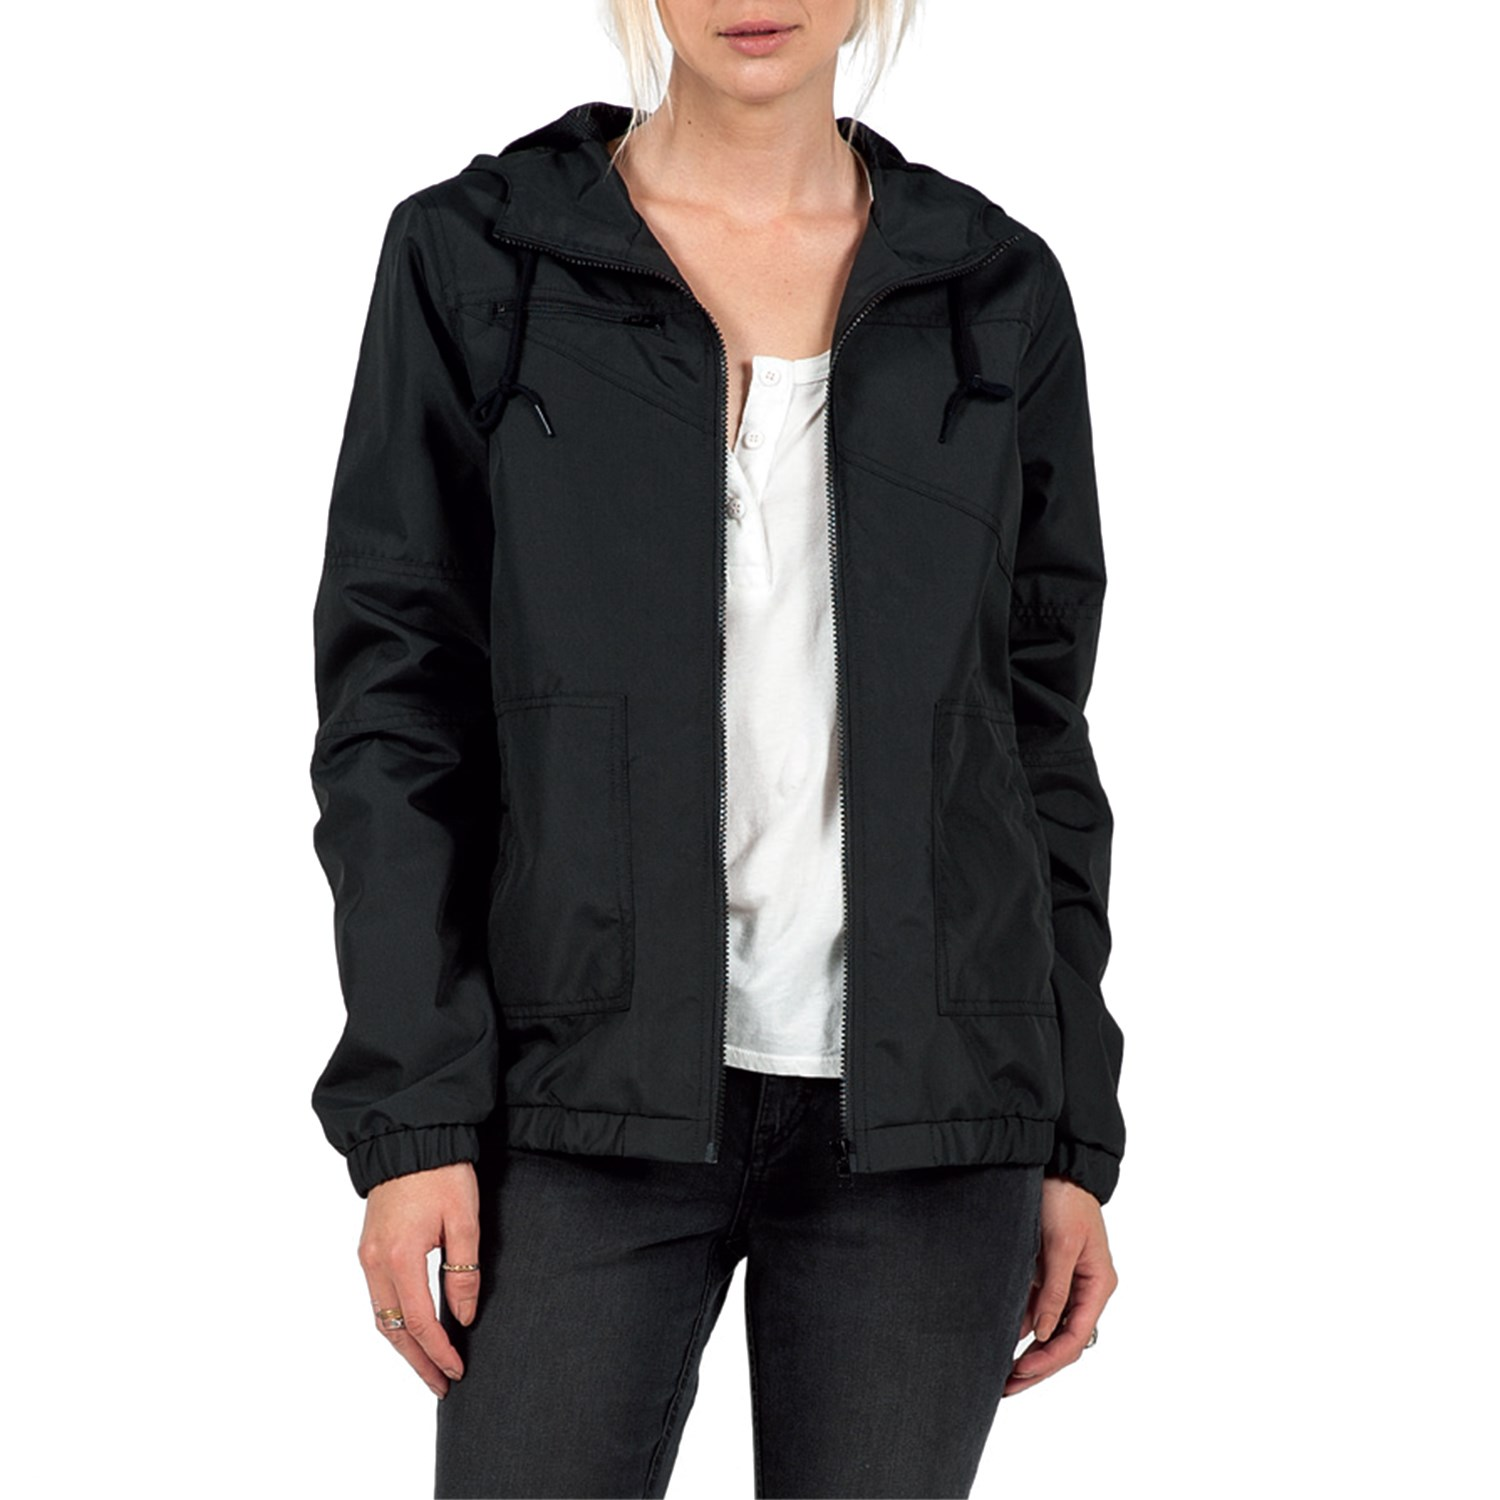 Volcom Enemy Stone Jacket - Women's $59.50 $44.63 Limited Time